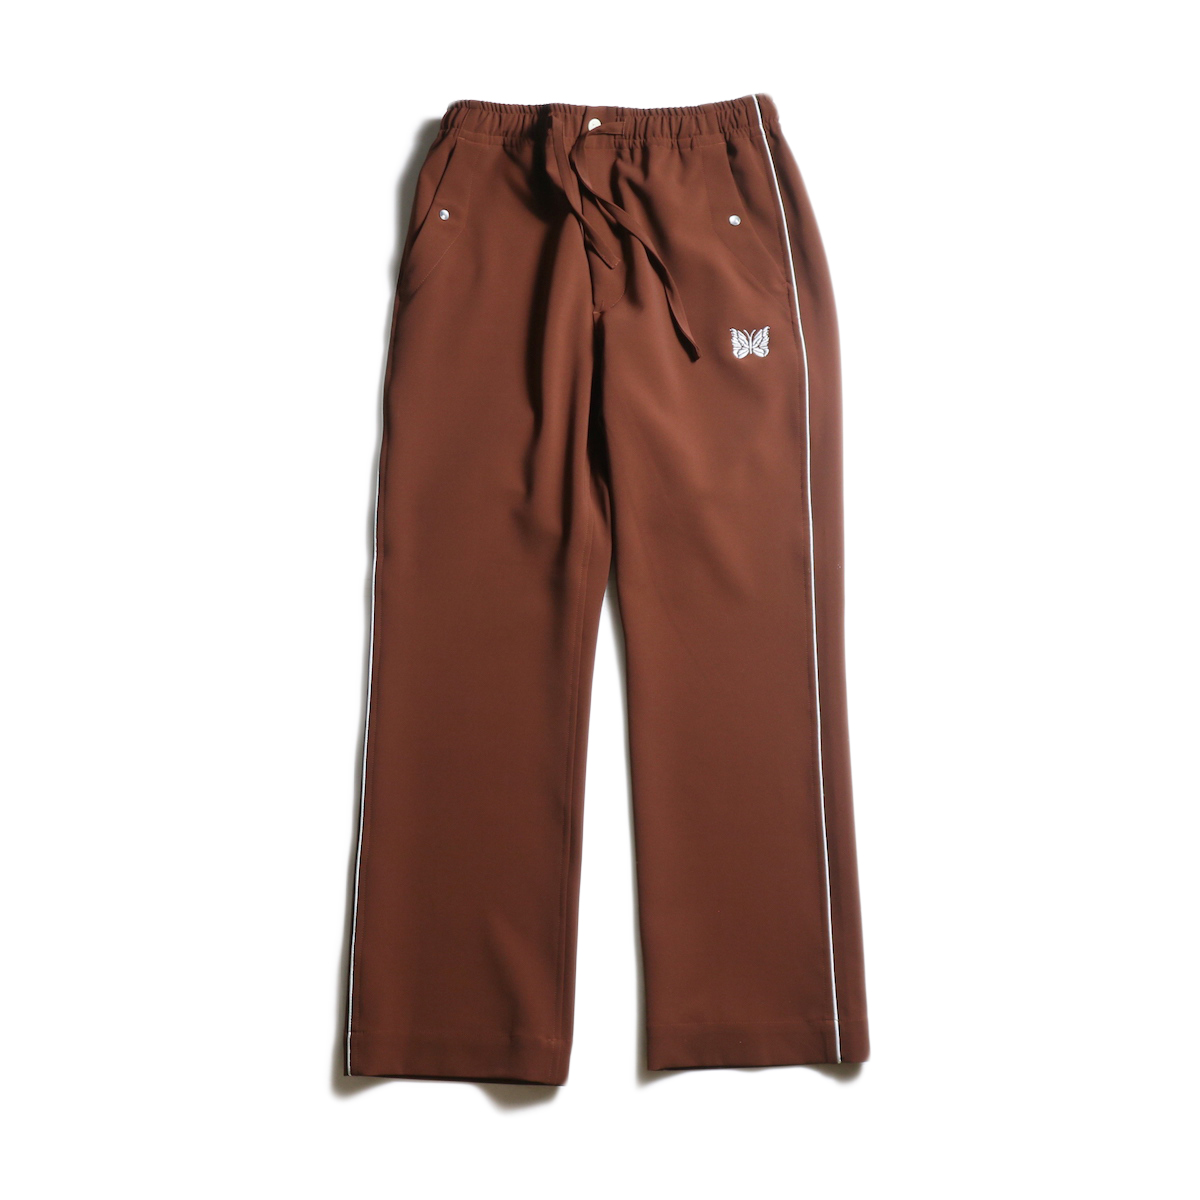 Needles / Piping Cowboy Pant - PE/PU Double Cloth (Brown)